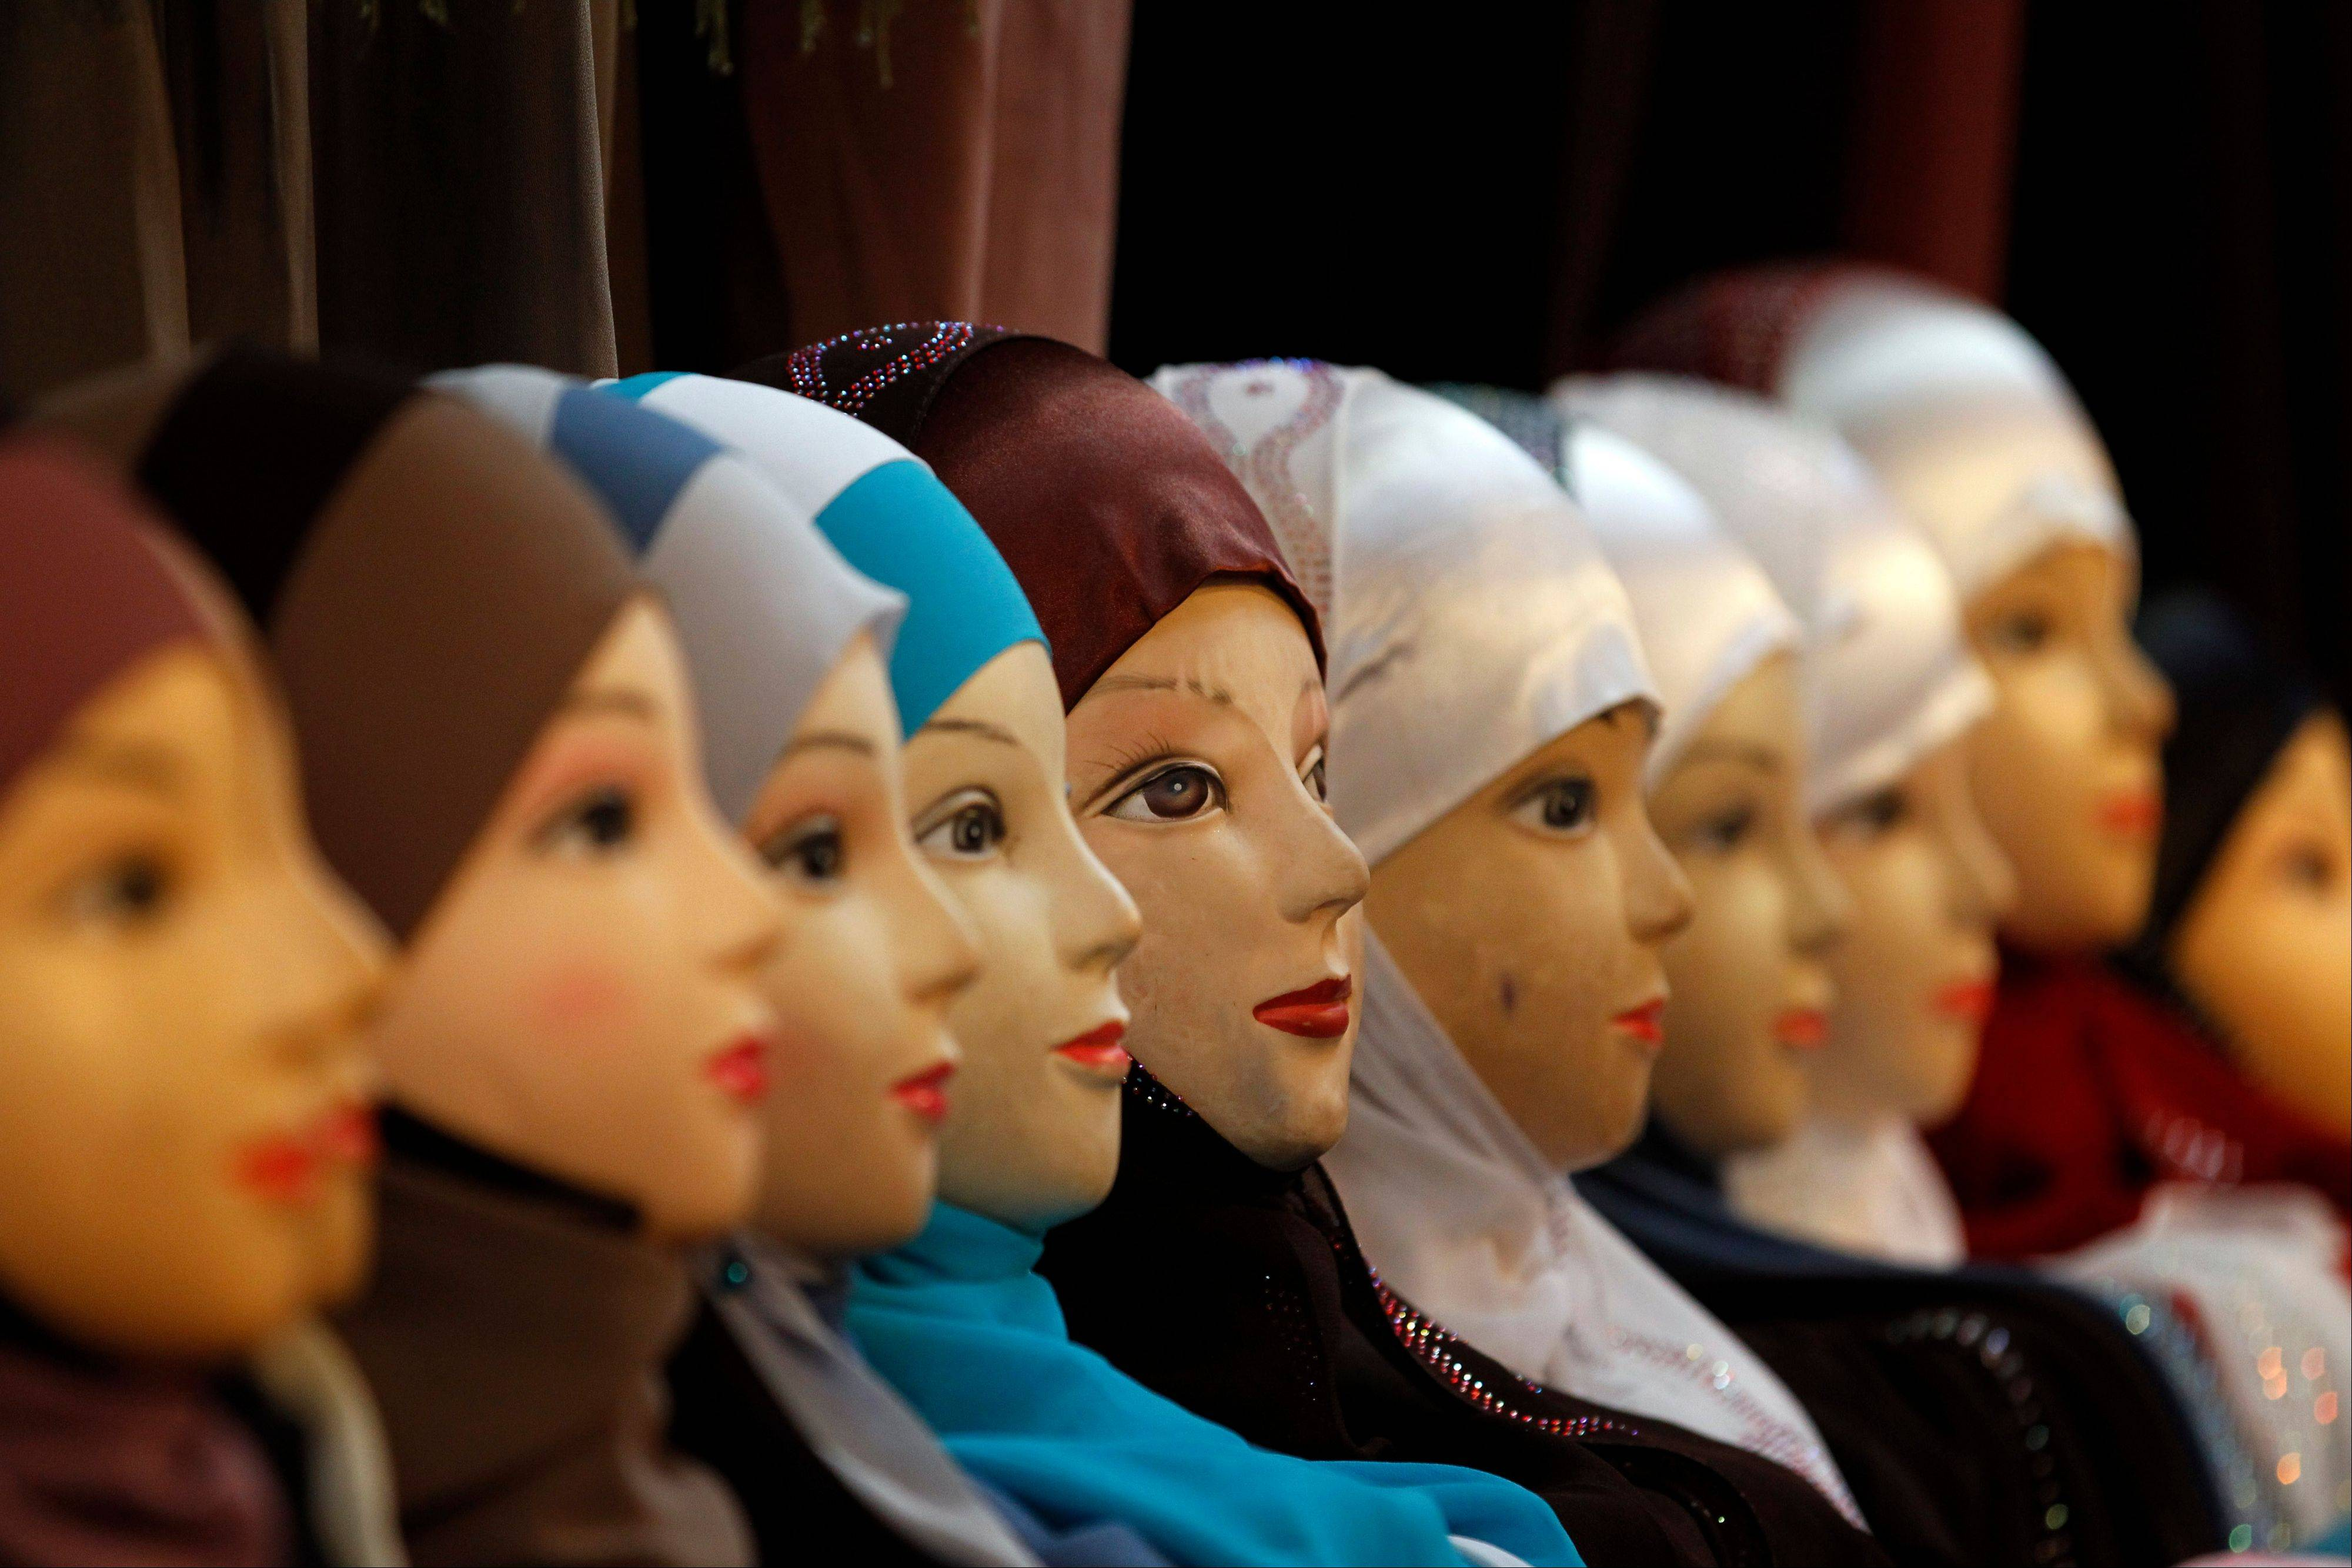 Mannequins with veils are seen on display at an exhibition hall for the Muslim World Fair in Le Bourget, outside Paris, in 2011. A British judge's decision this week permitting a female Muslim defendant to wear a full face veil in court, but requiring her to remove it when giving evidence, has reignited a debate about Muslim veils that has flared across Europe.